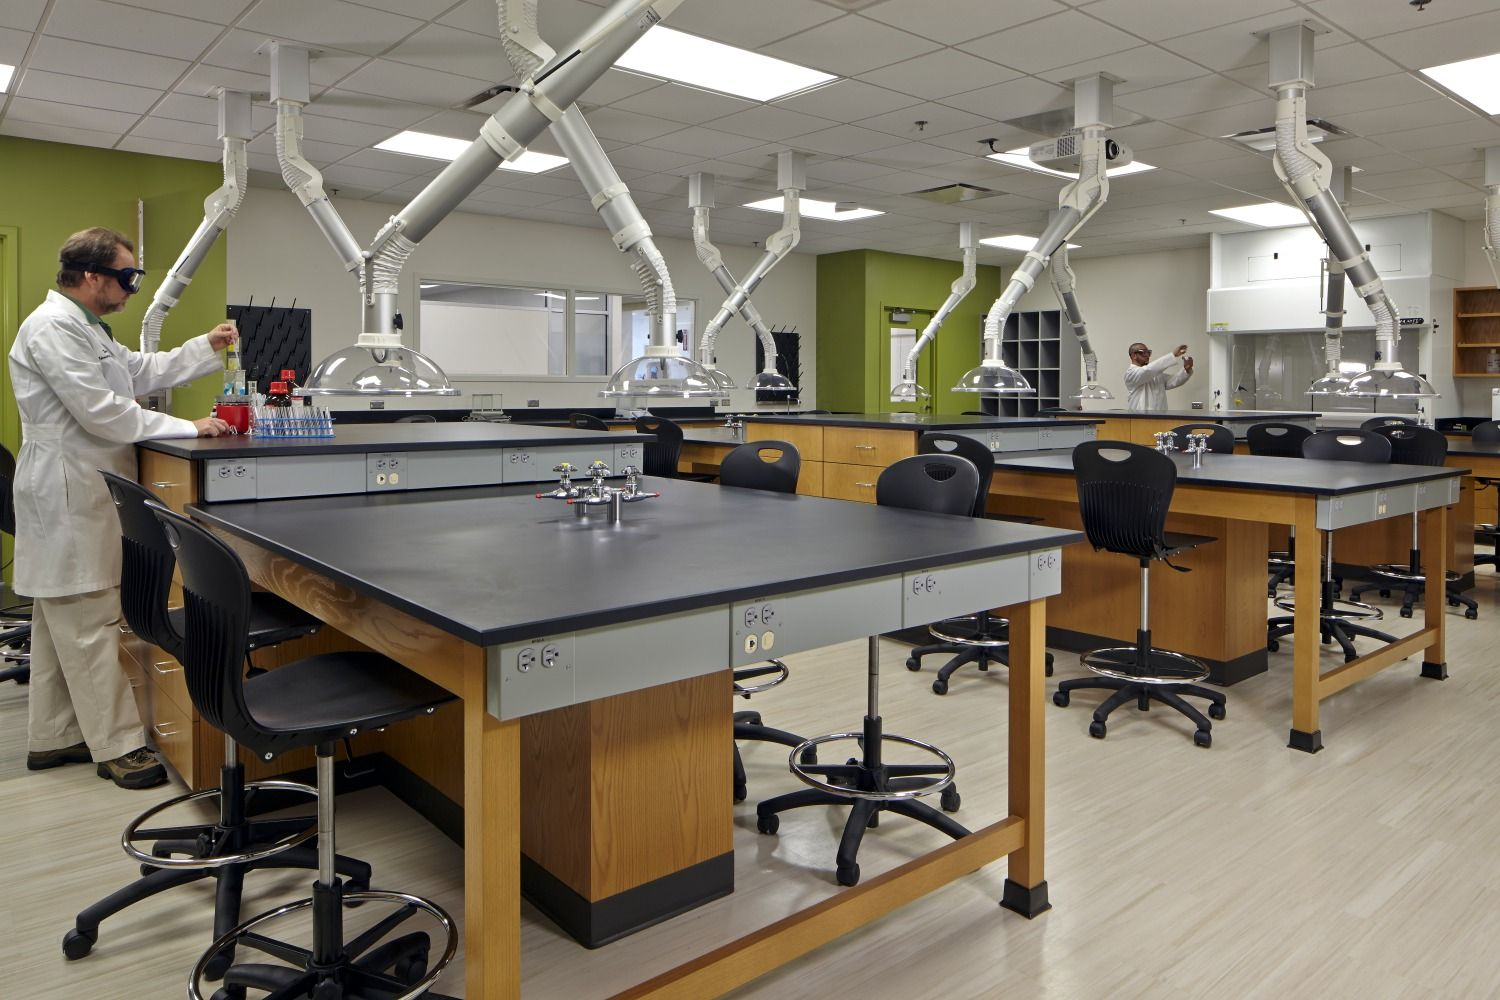 Georgia Gwinnett College #tvsdesign http://bit.ly/1NqvkTx laboratories education